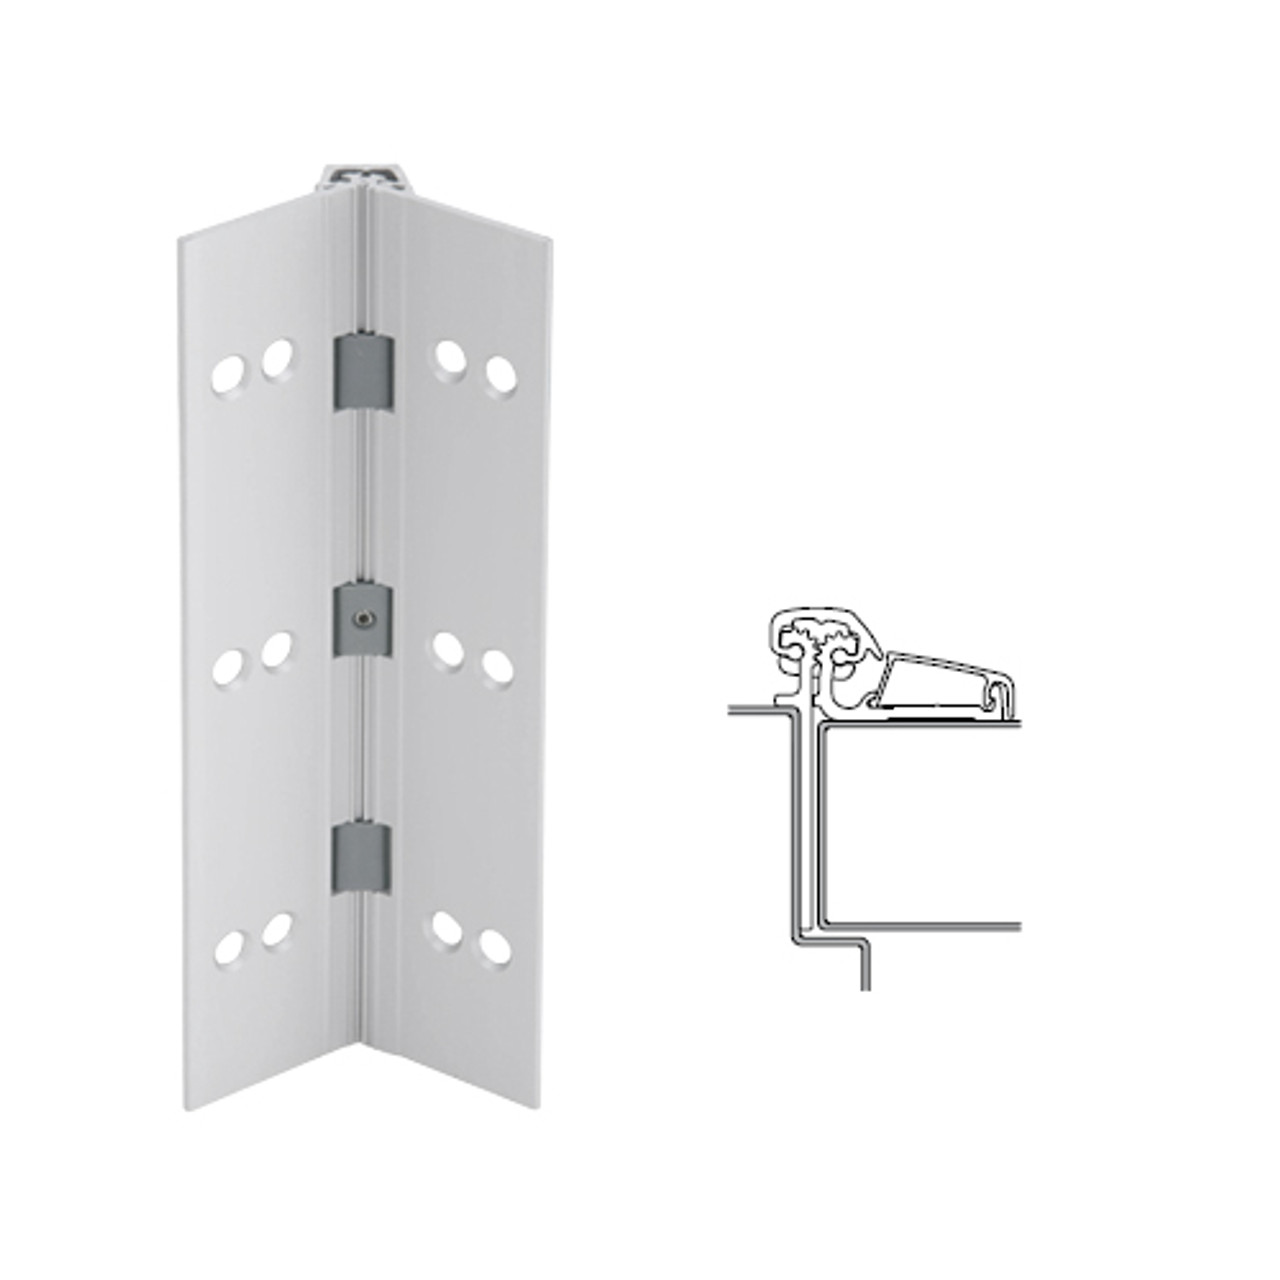 054XY-US28-120-SECHM IVES Adjustable Half Surface Continuous Geared Hinges with Security Screws - Hex Pin Drive in Satin Aluminum